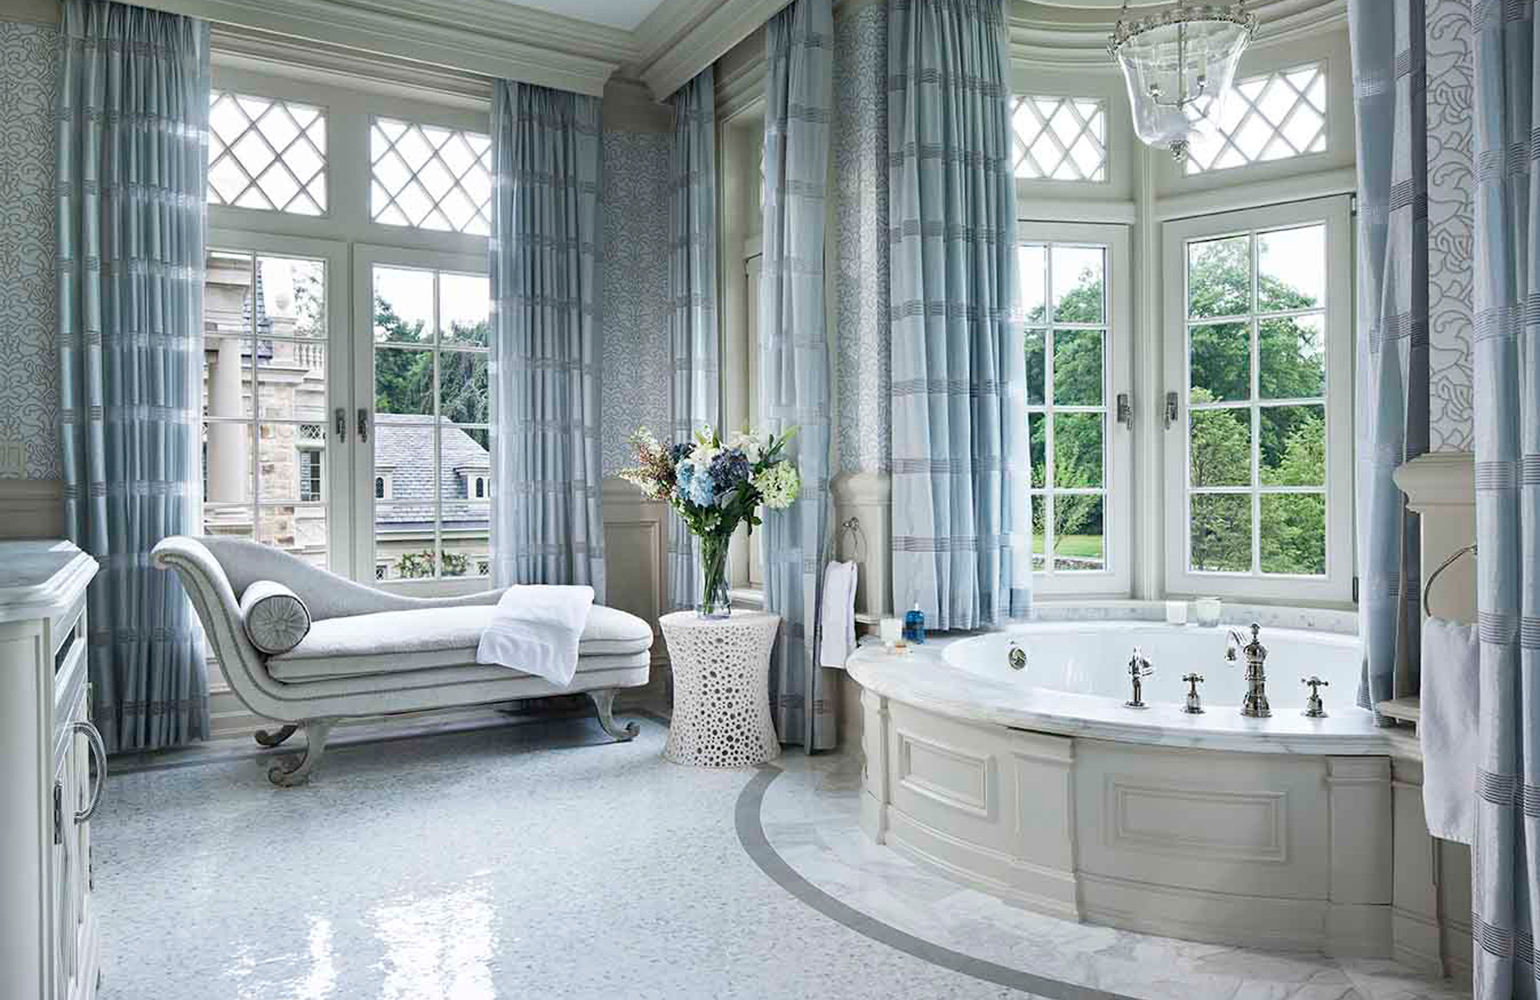 46 Sprawling Master Bath Suites